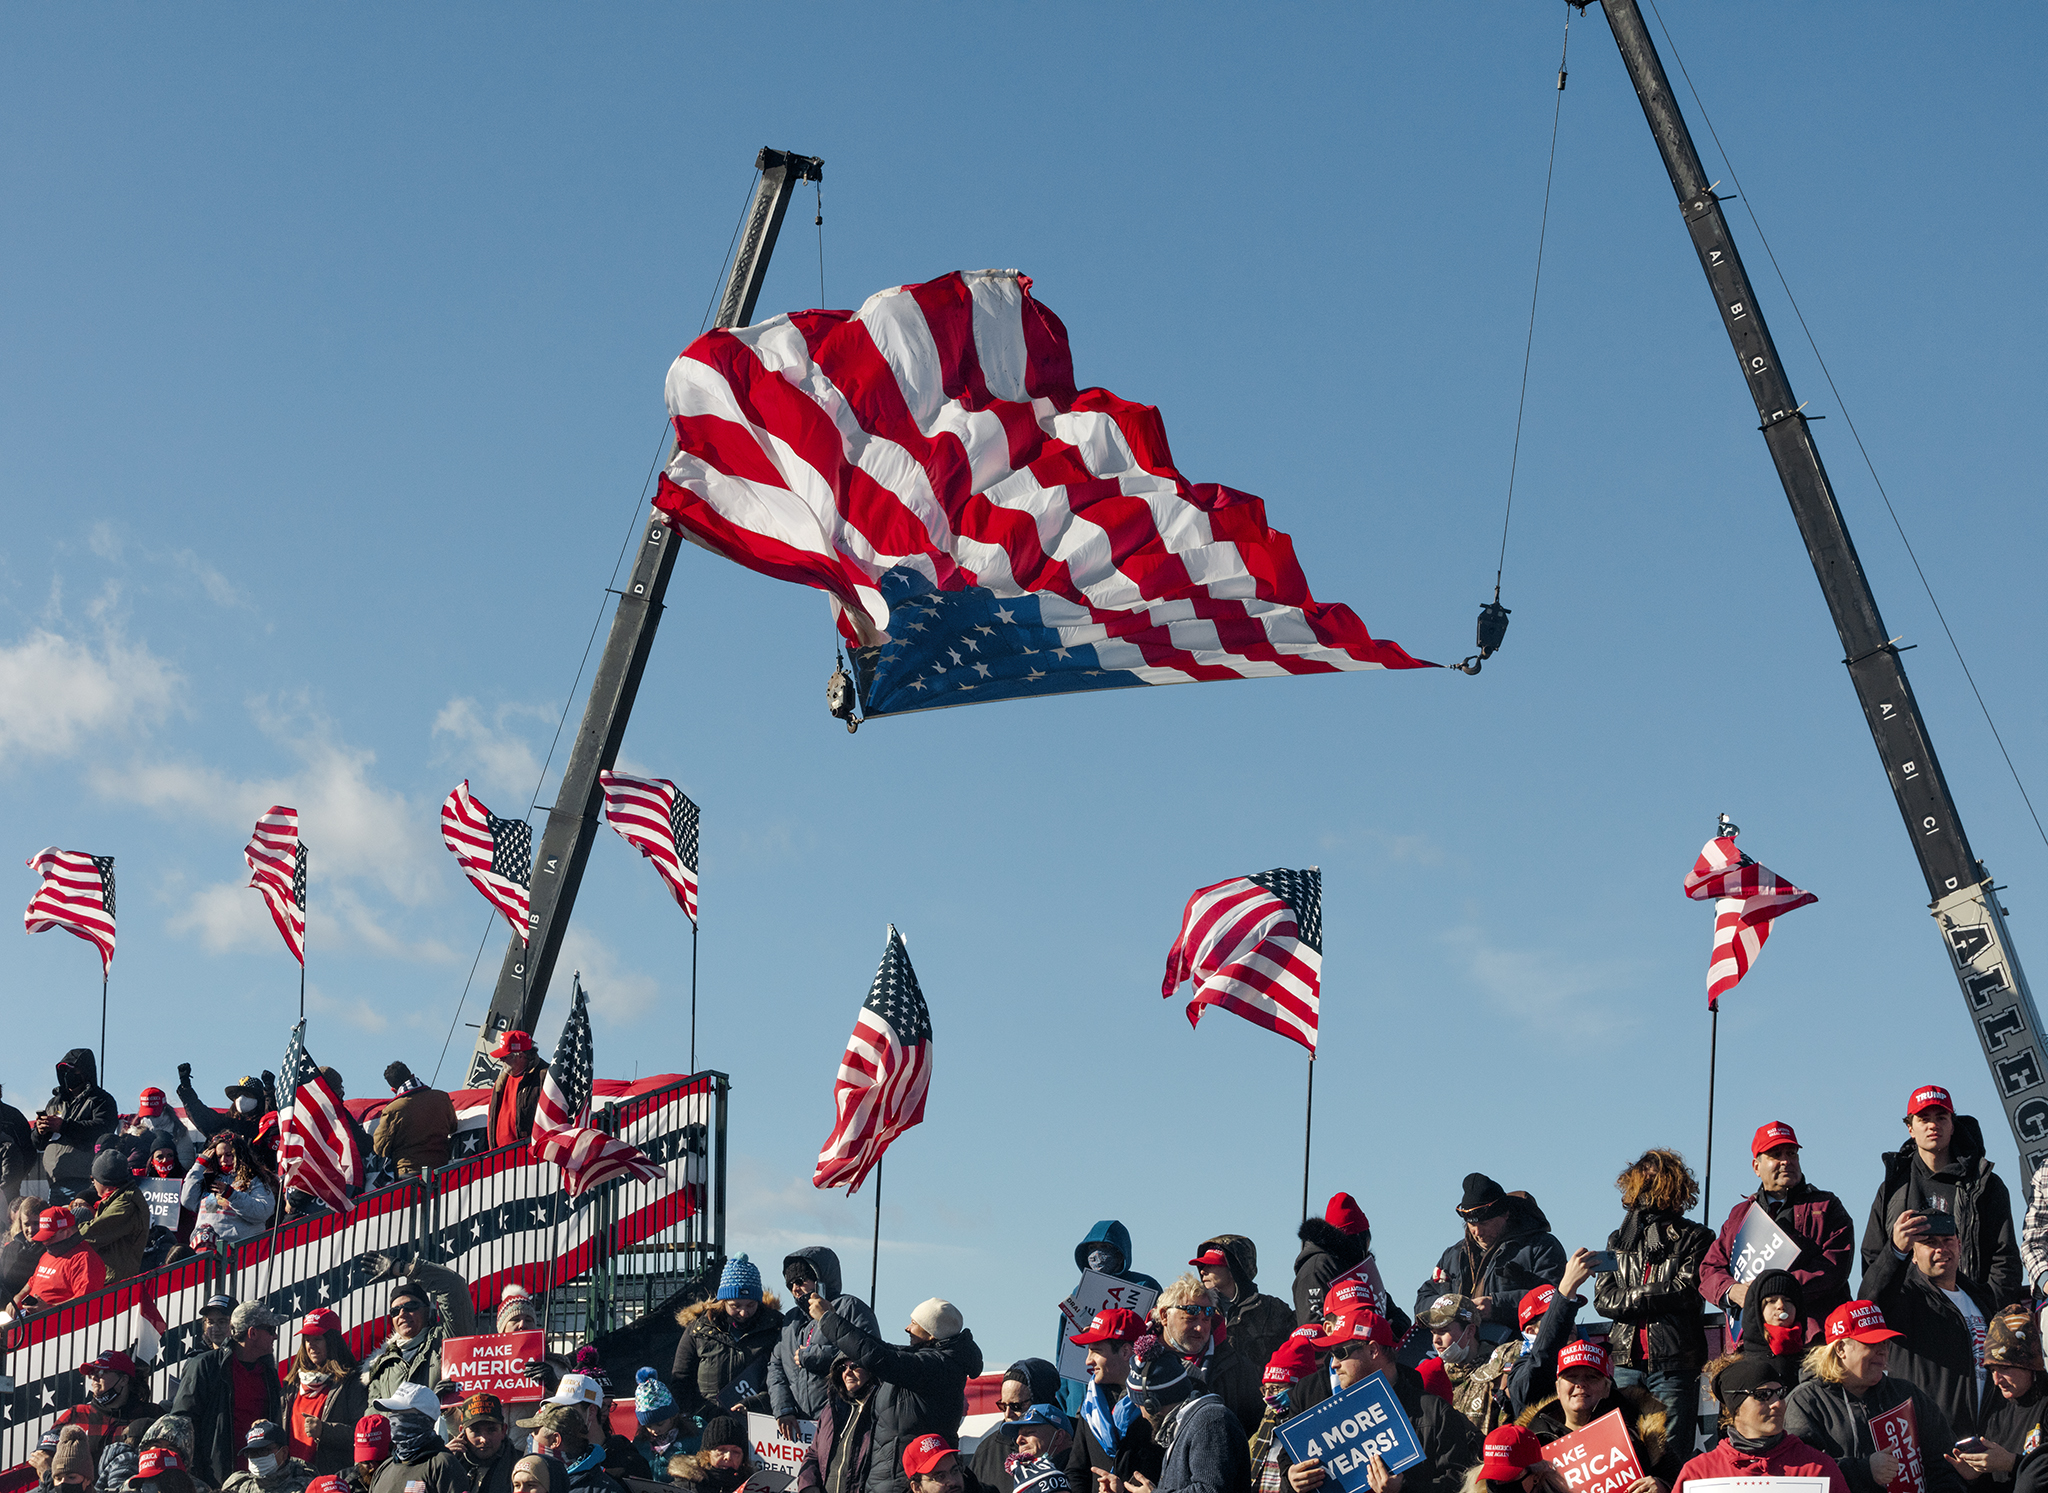 Picture of a flag flying upside down above a large crowd